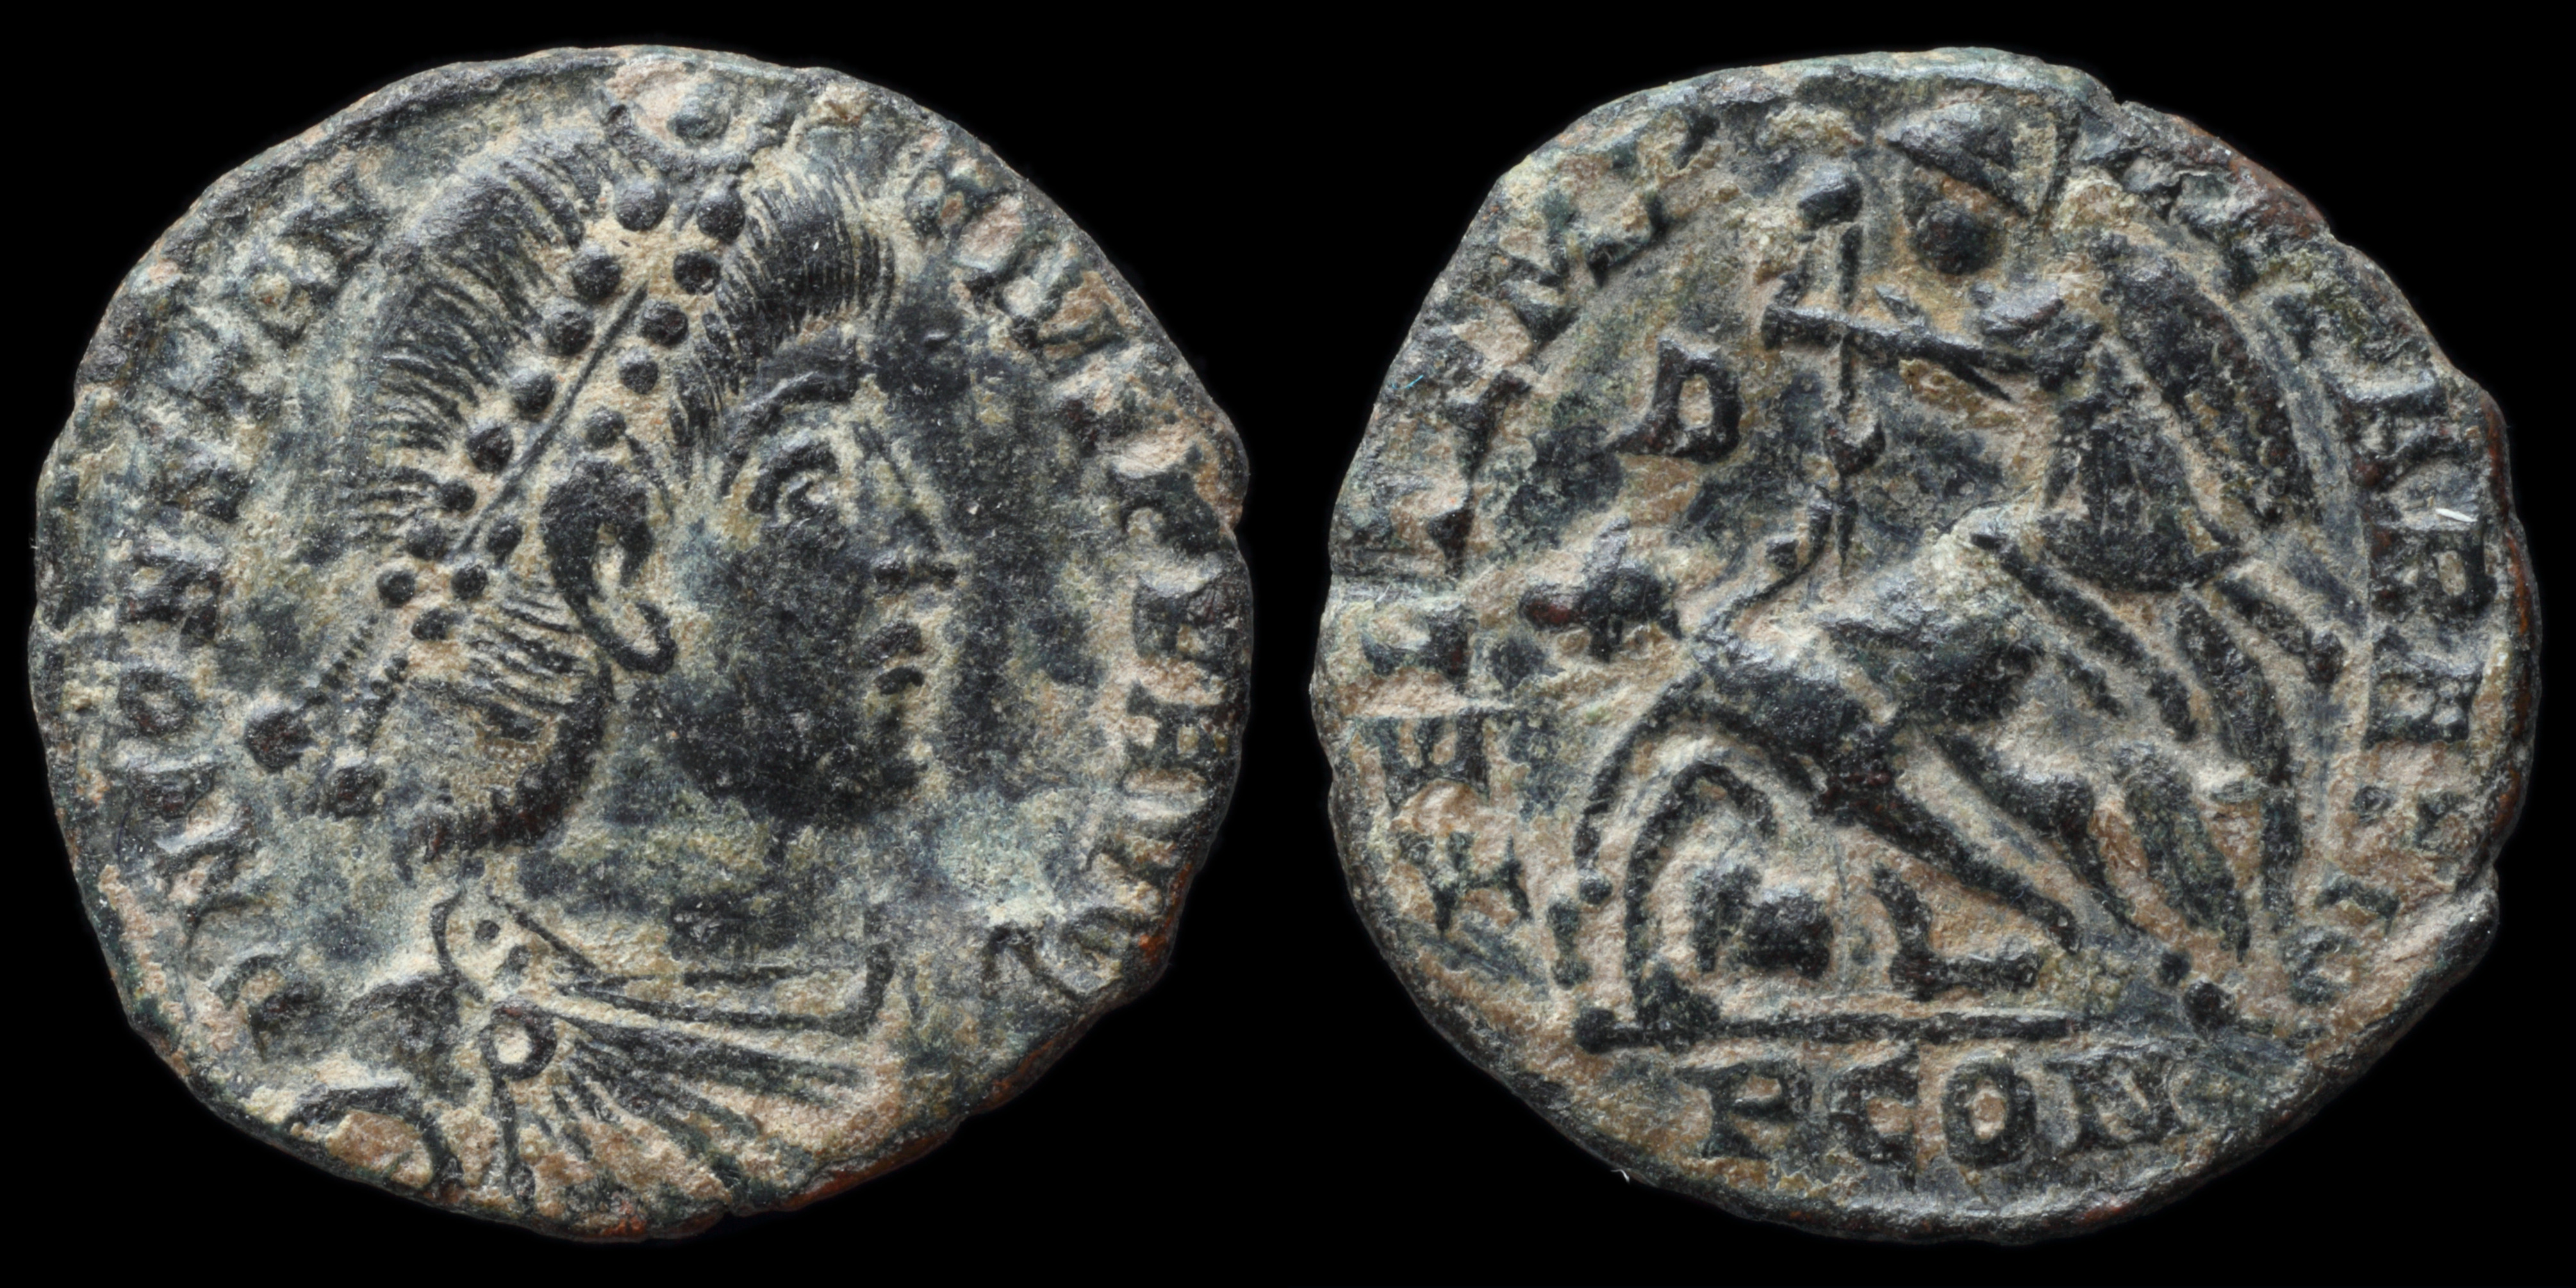 /Files/Images/Coinsite/CoinDB/L3_Constantius_II_D_PCONS.jpg